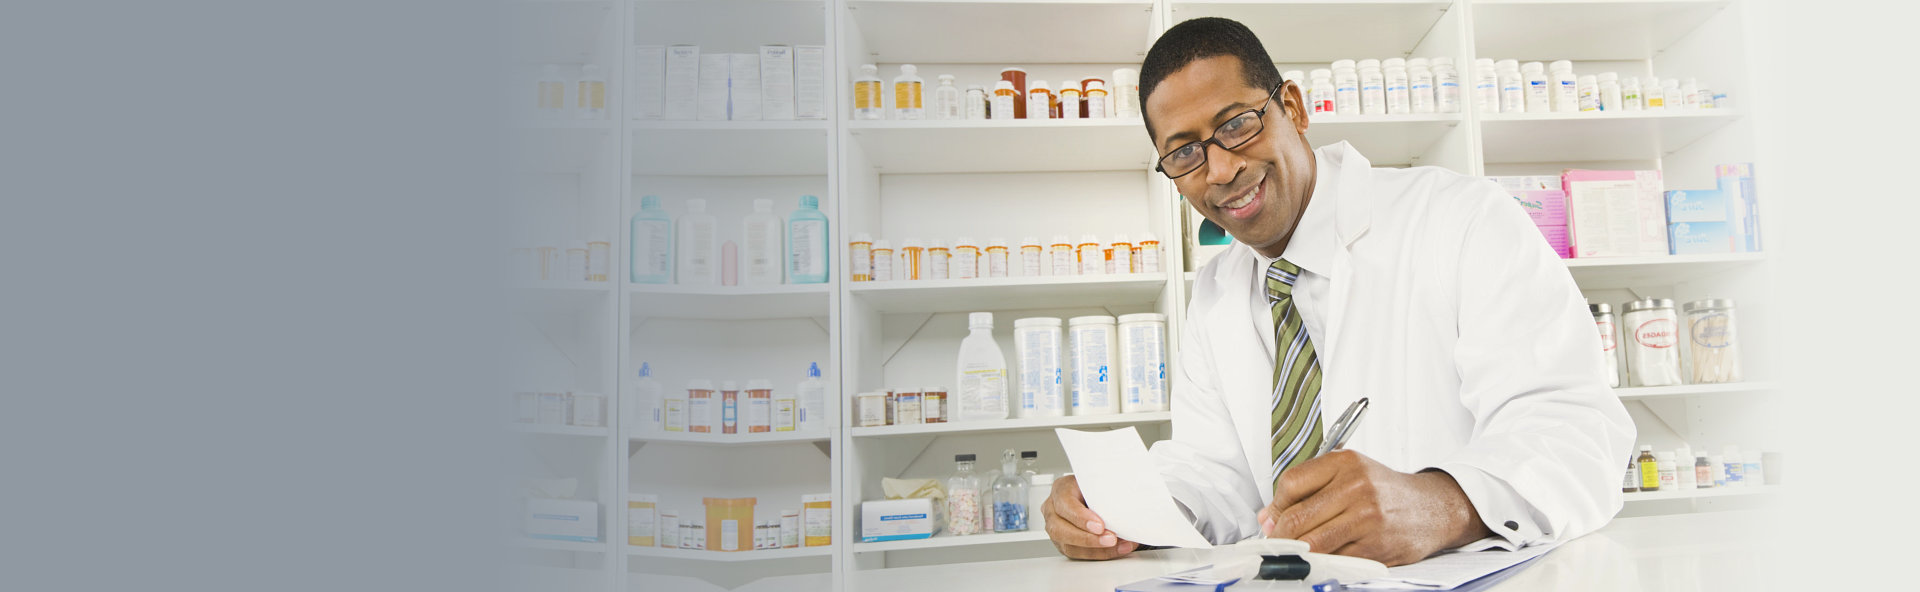 Pharmacist holding a paper and a pen